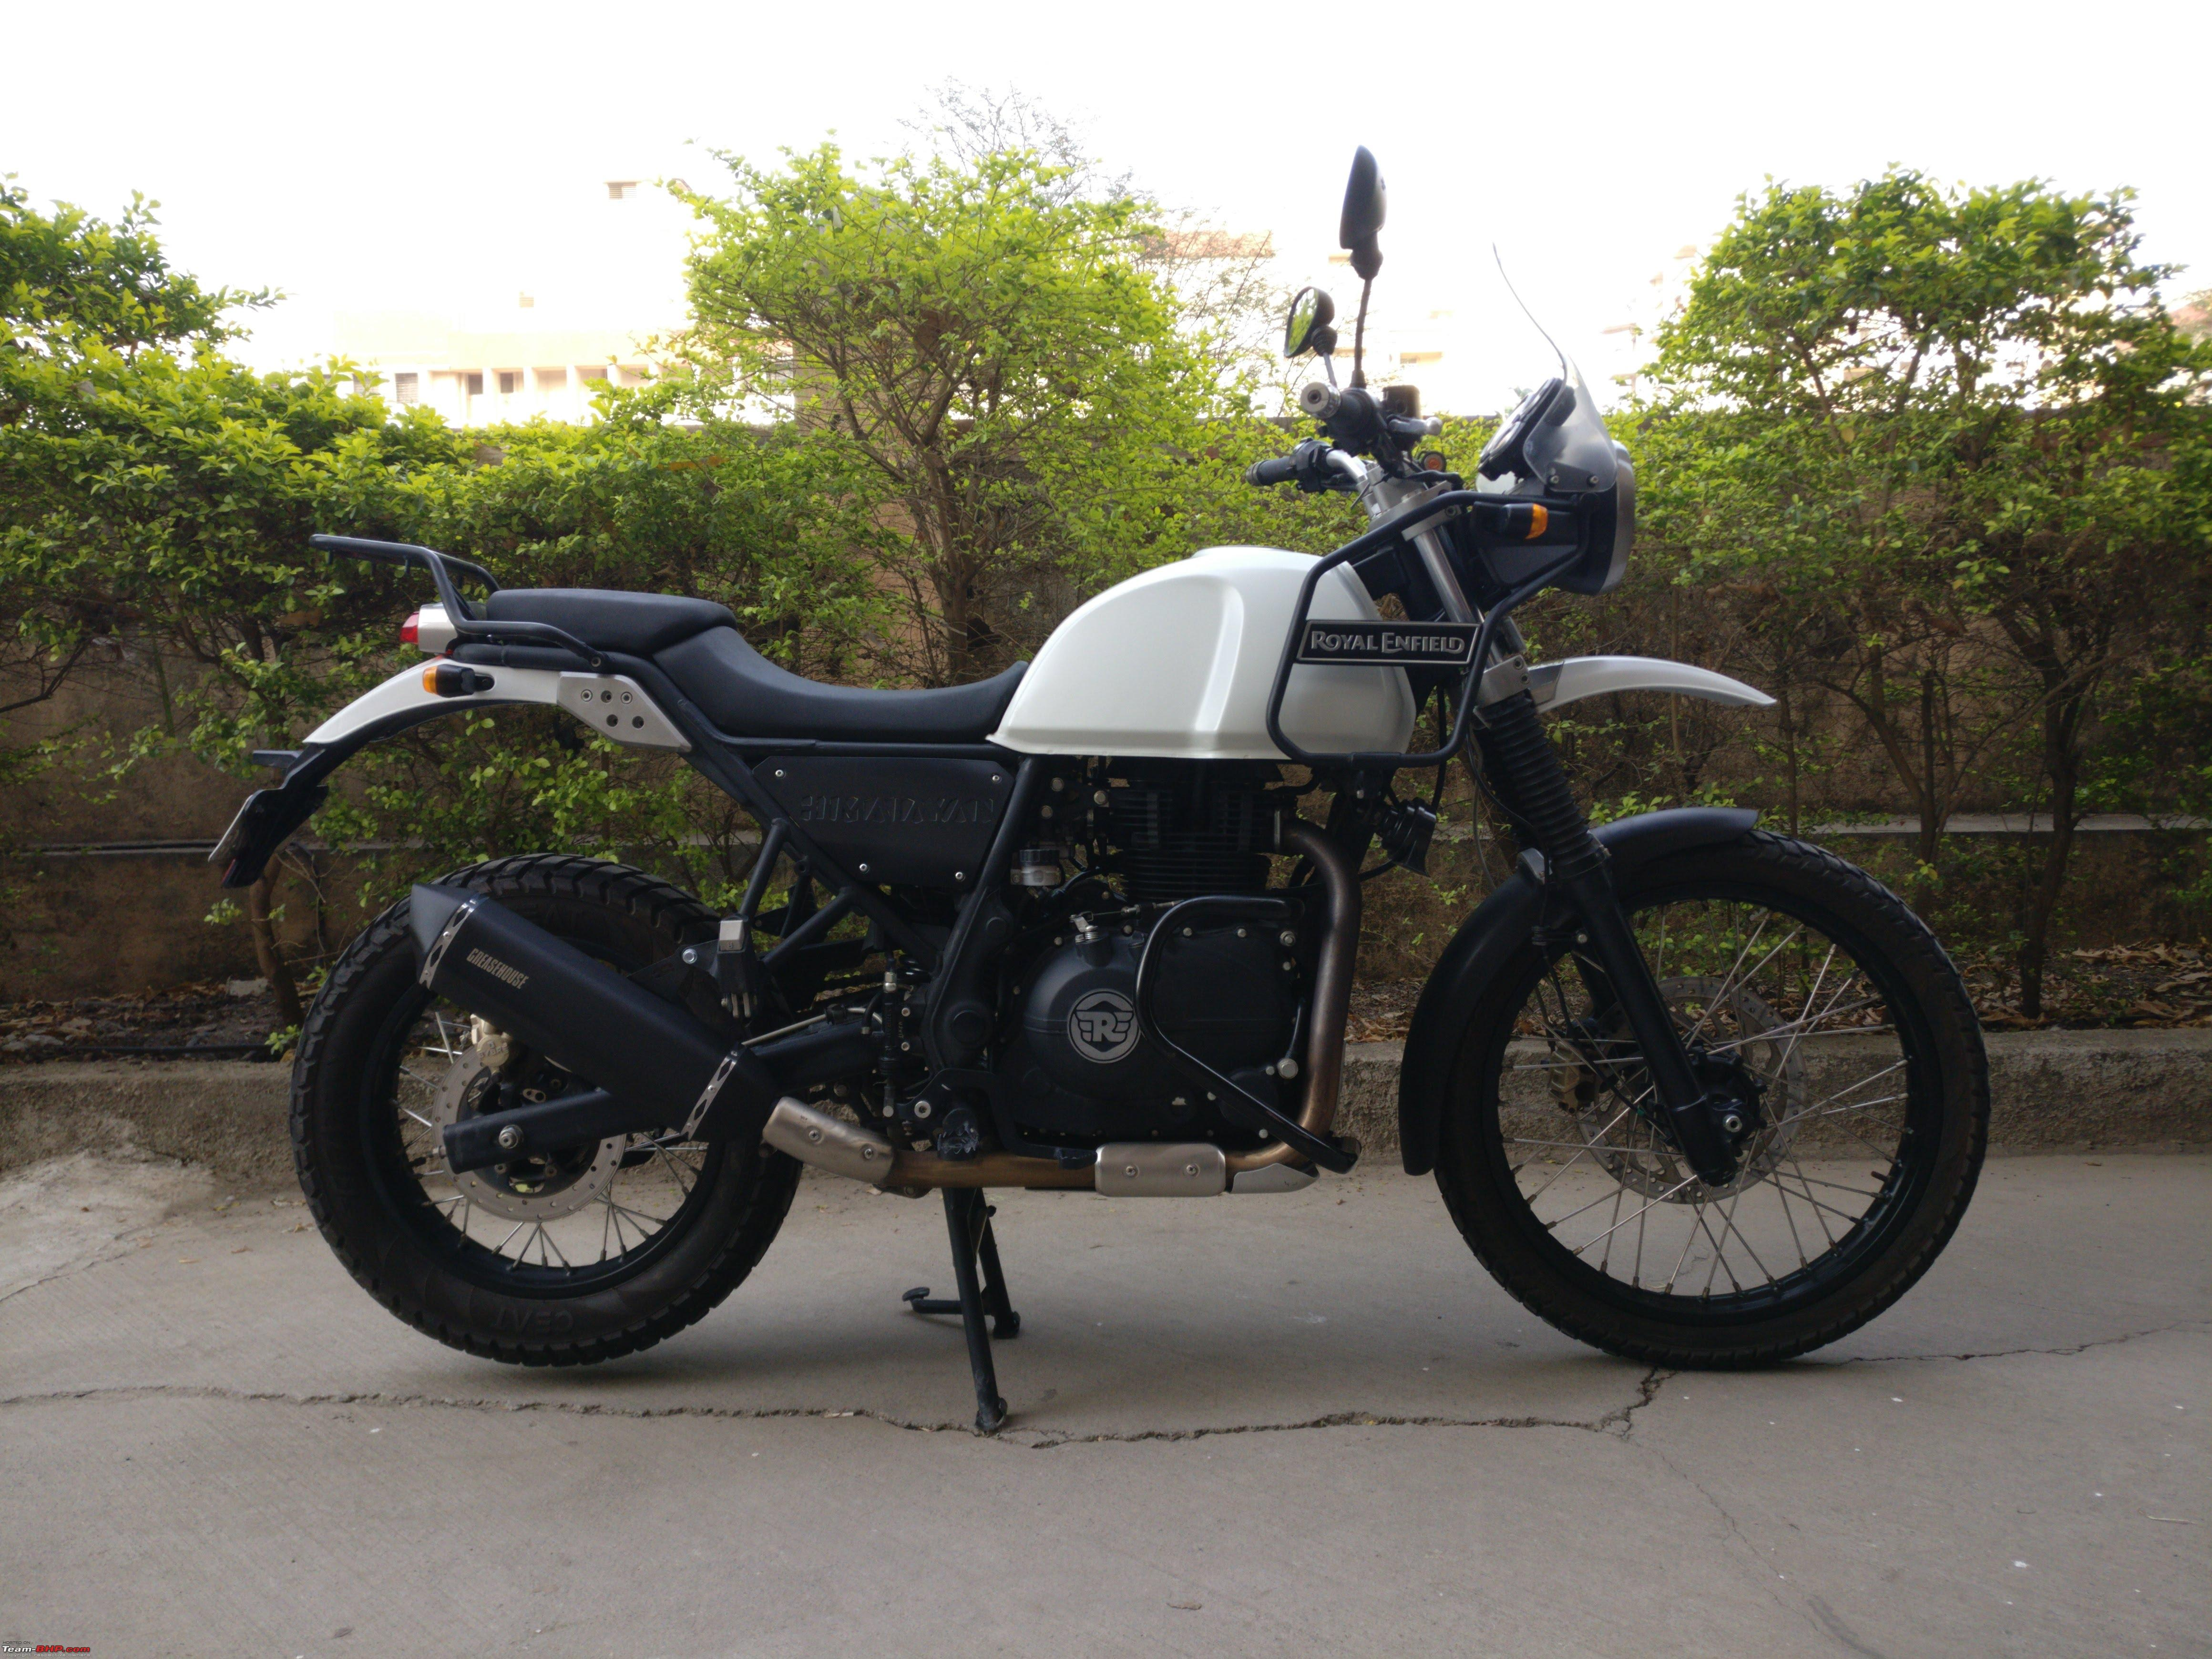 The Royal Enfield Himalayan thread! - Page 48 - Team-BHP